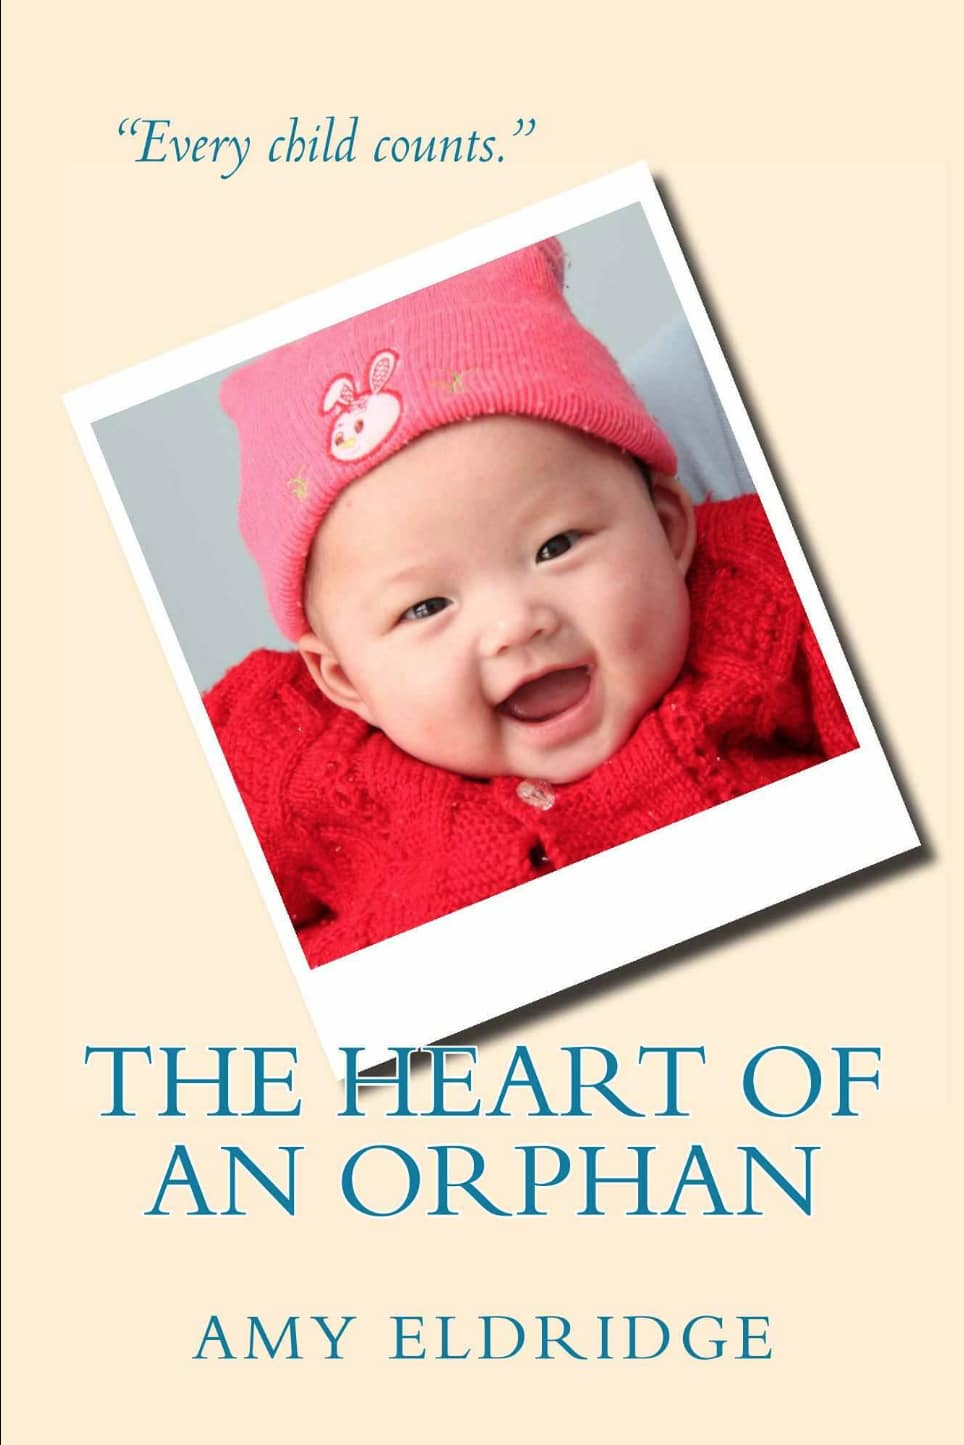 Picture of adopted baby for The Heart of an Orphan.